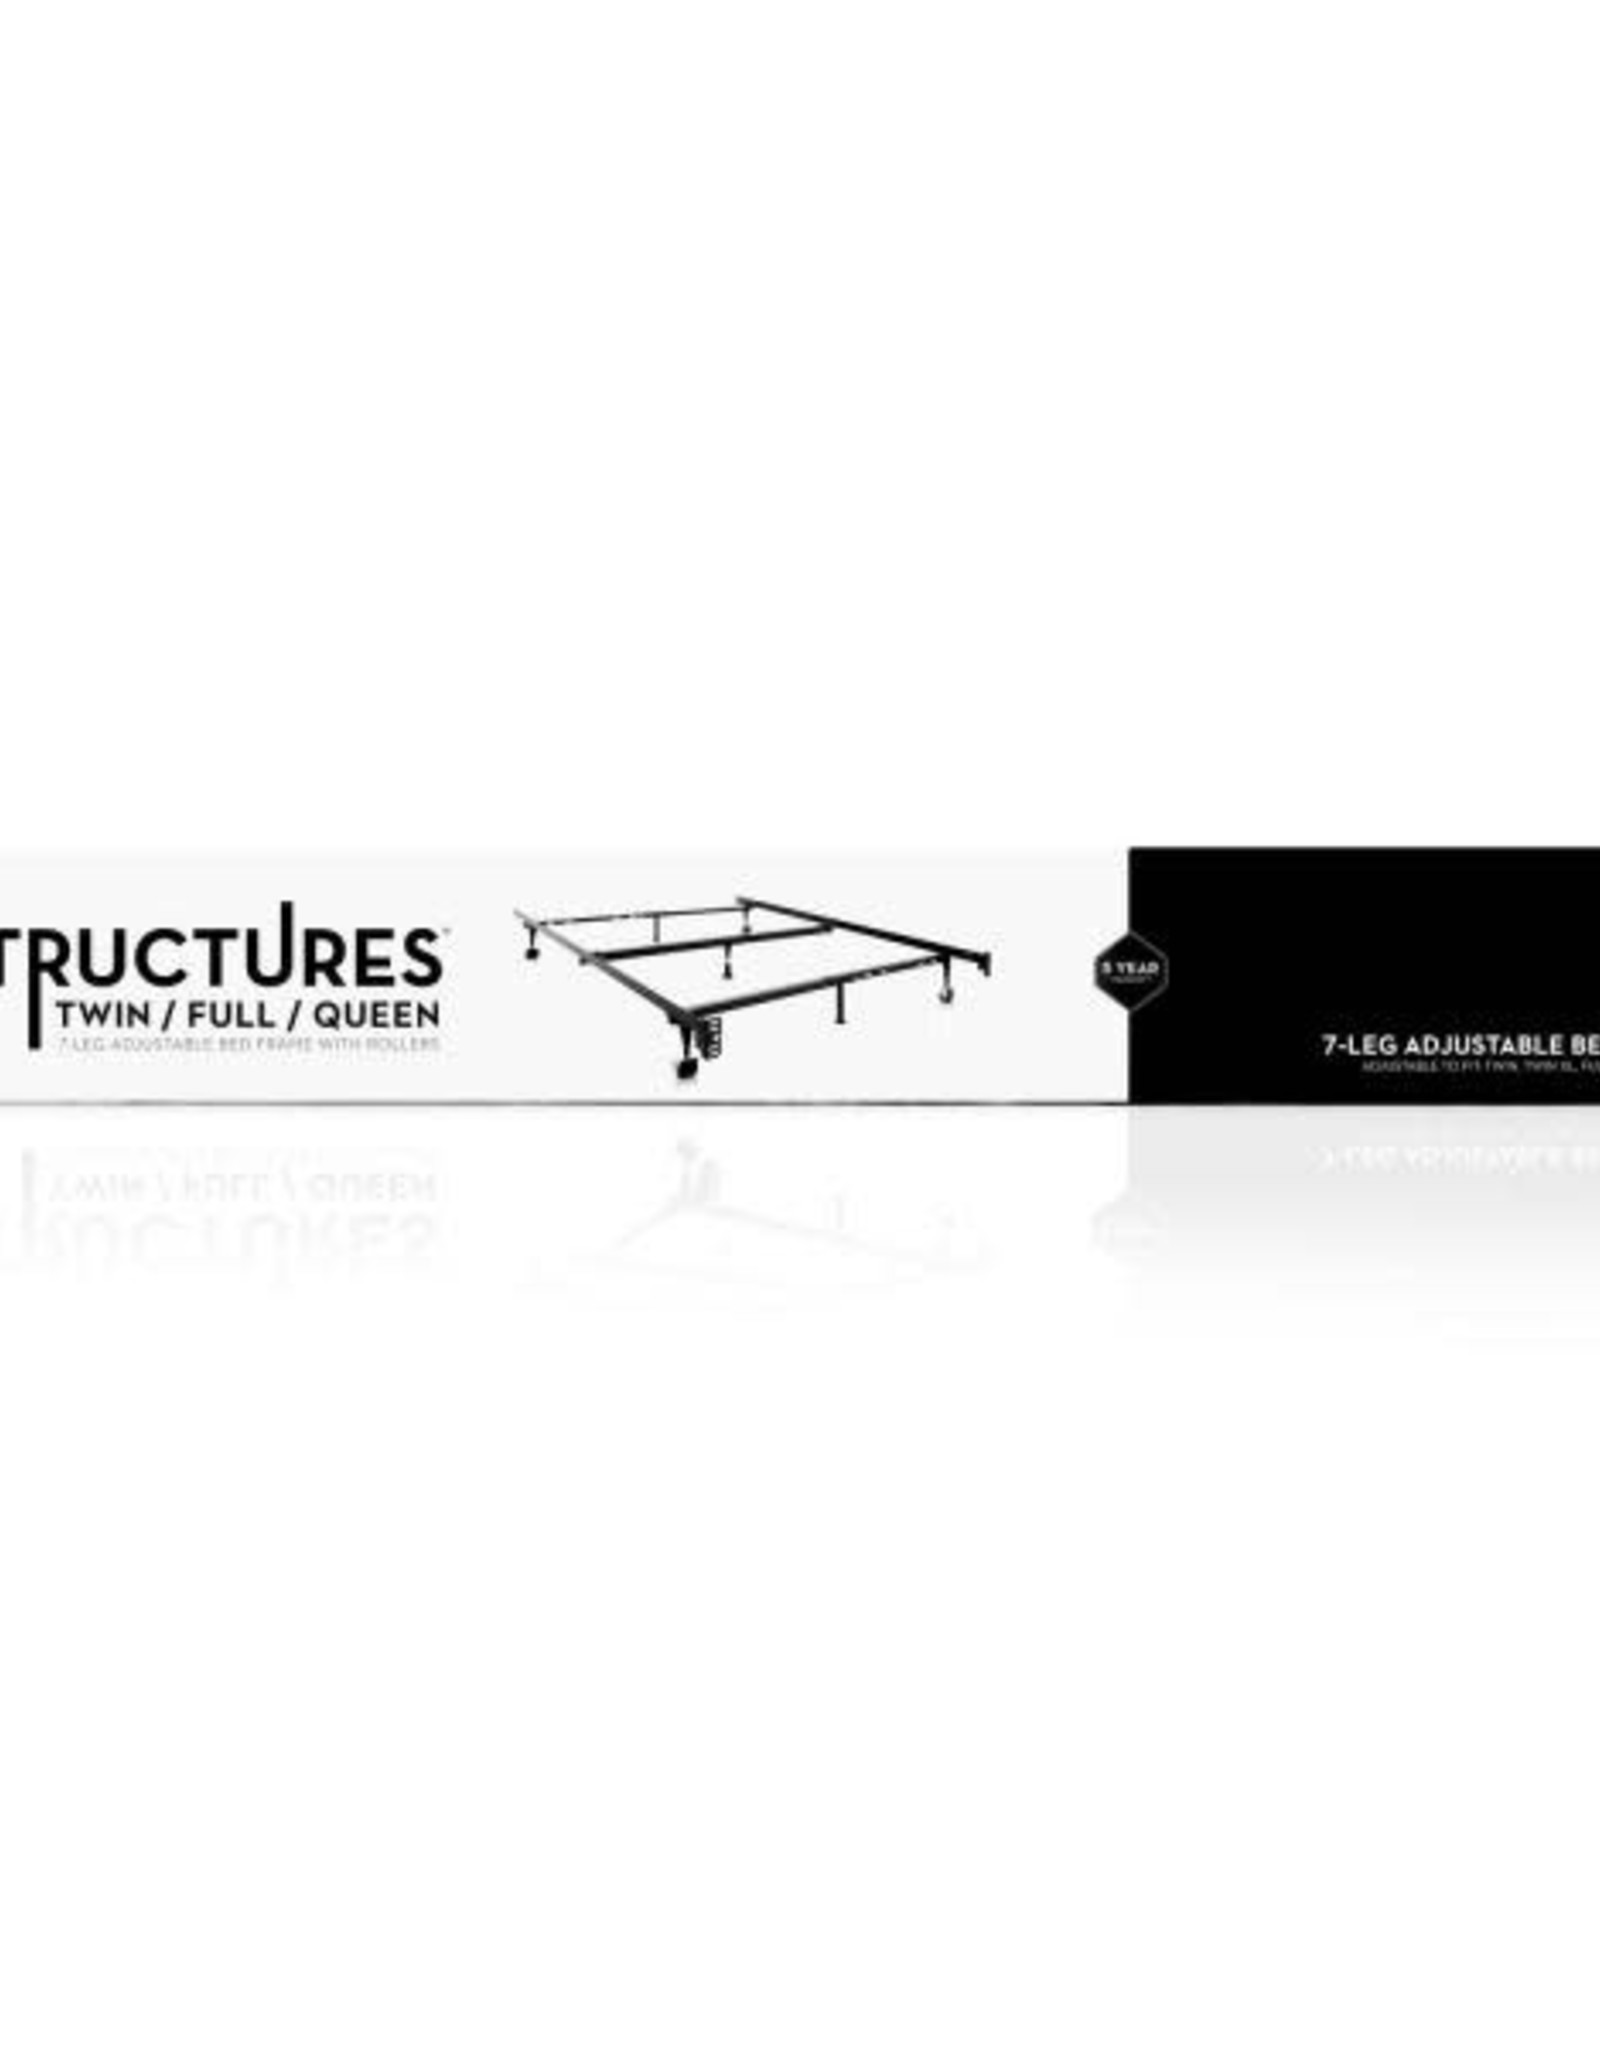 Malouf Structures Bed Frame Twin- King Size